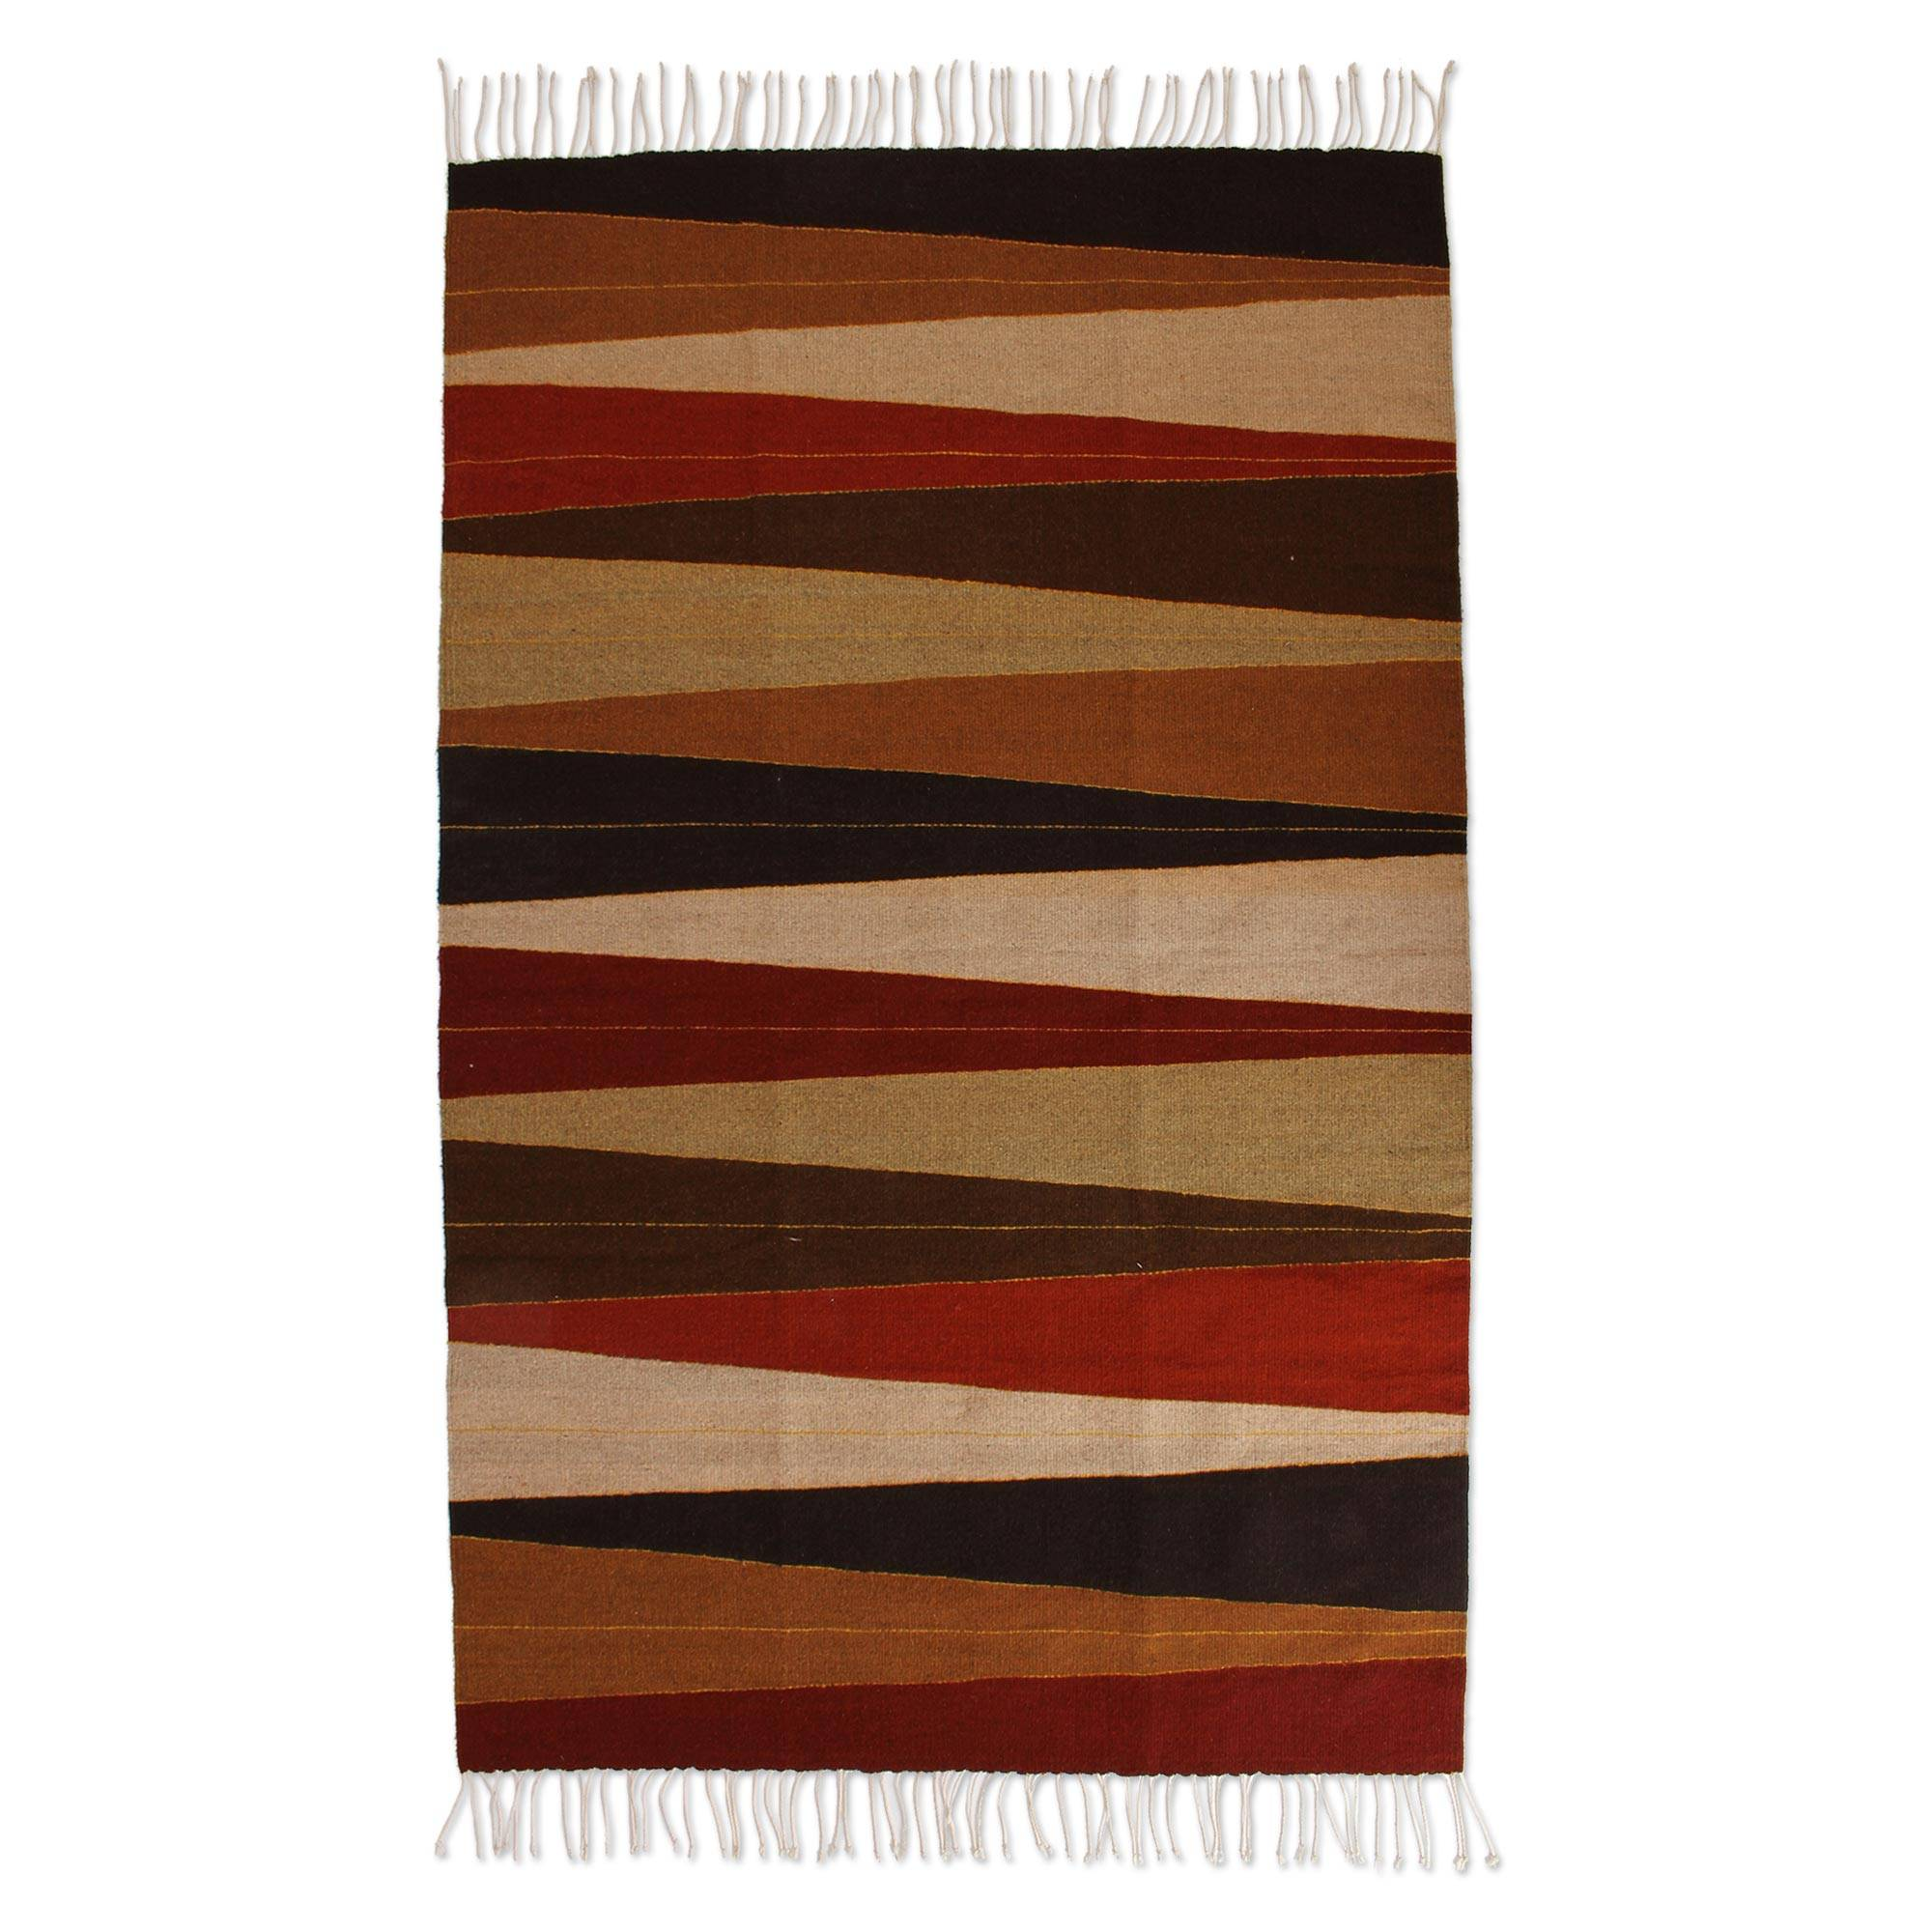 Handwoven Earth Tone Wool Area Rug From Mexico 4x6 Earth Rays